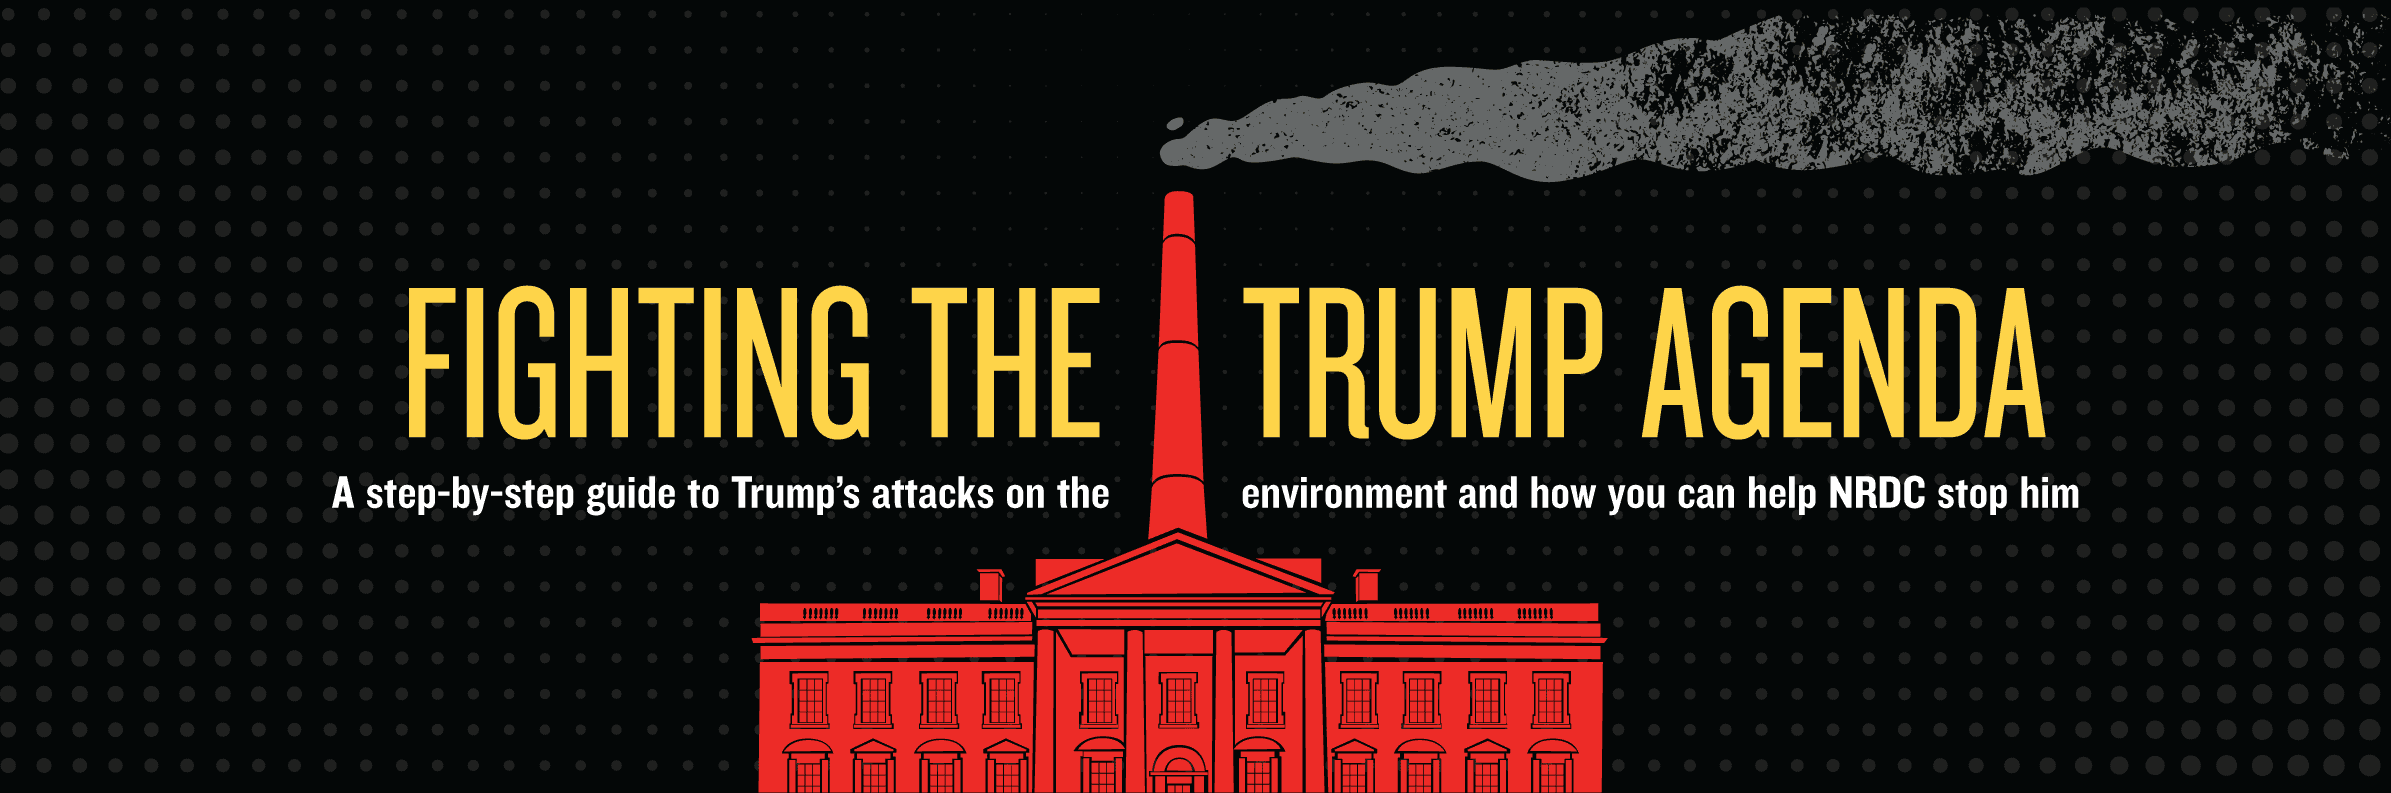 FIGHTING THE TRUMP AGENDA